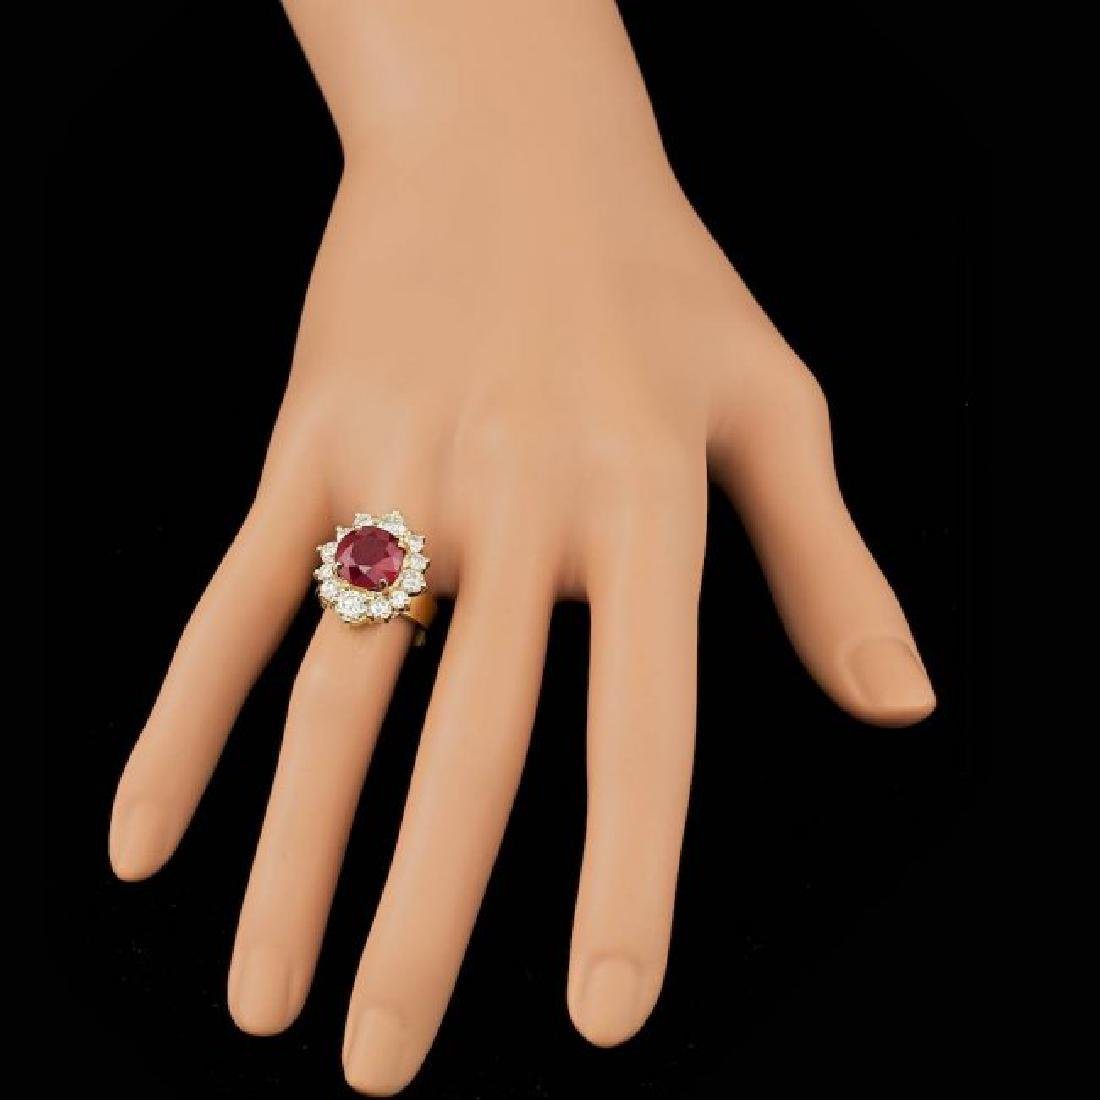 14k Yellow Gold 5.50ct Ruby 1.85ct Diamond Ring - 4